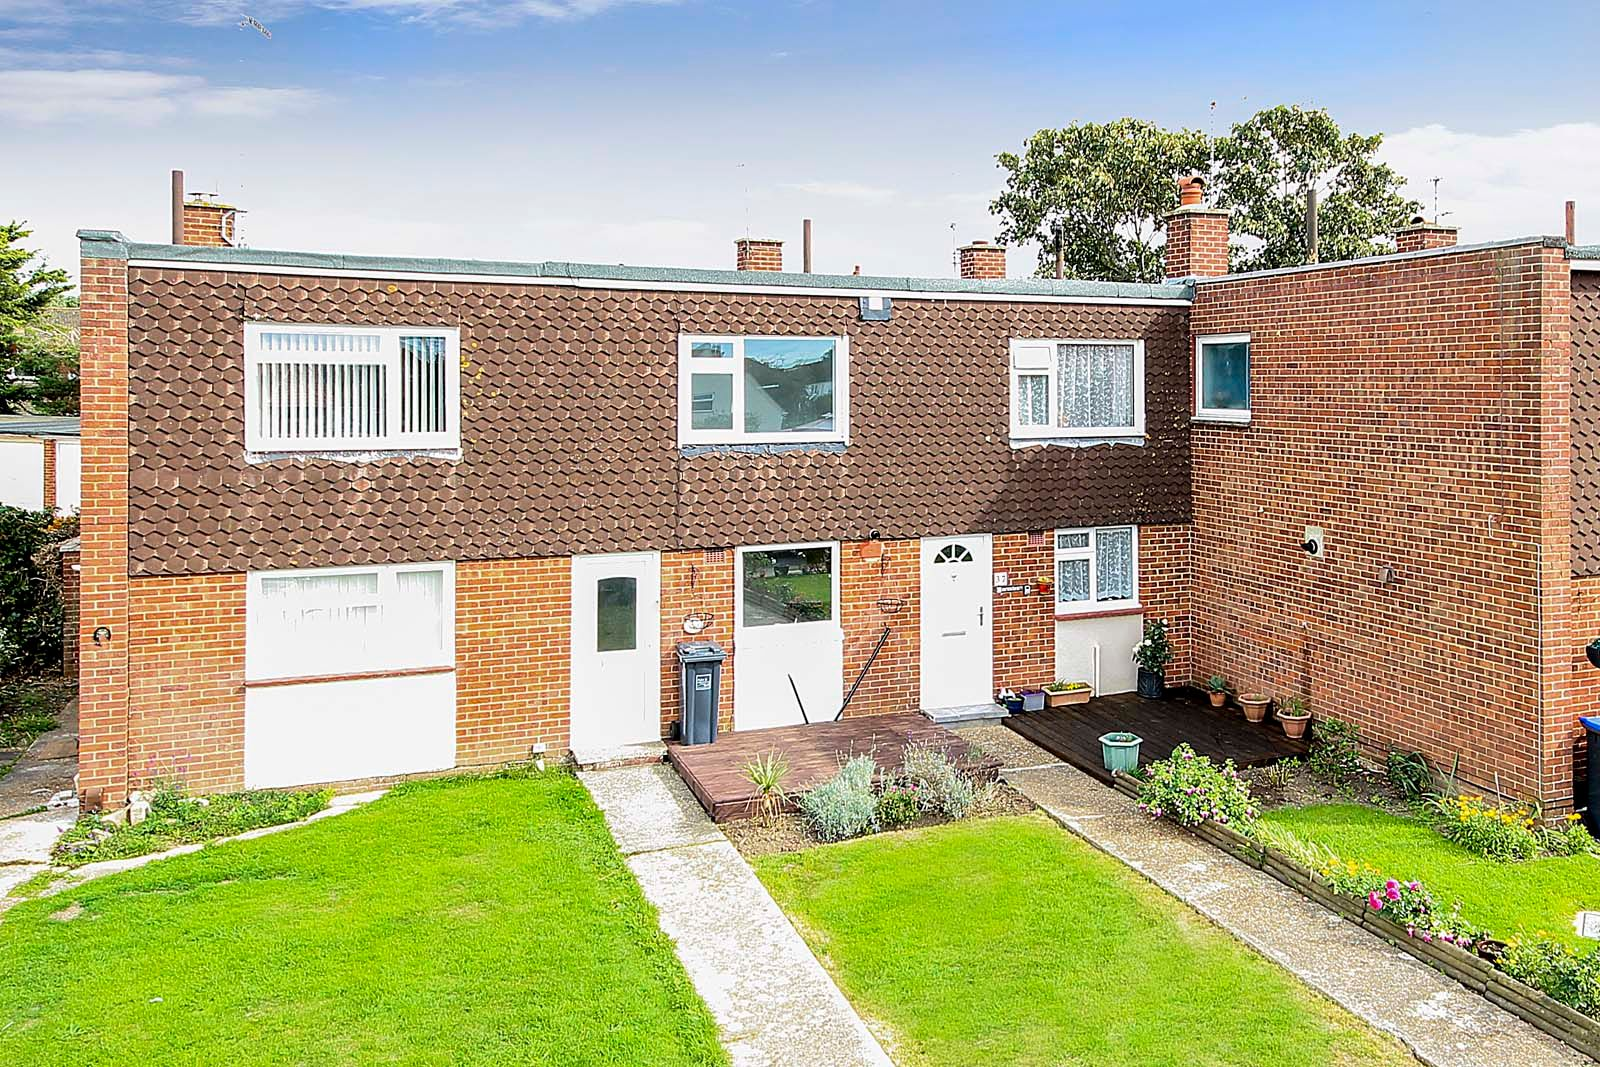 2 bed house for sale in Church Way COMP Jan 2019  - Property Image 1